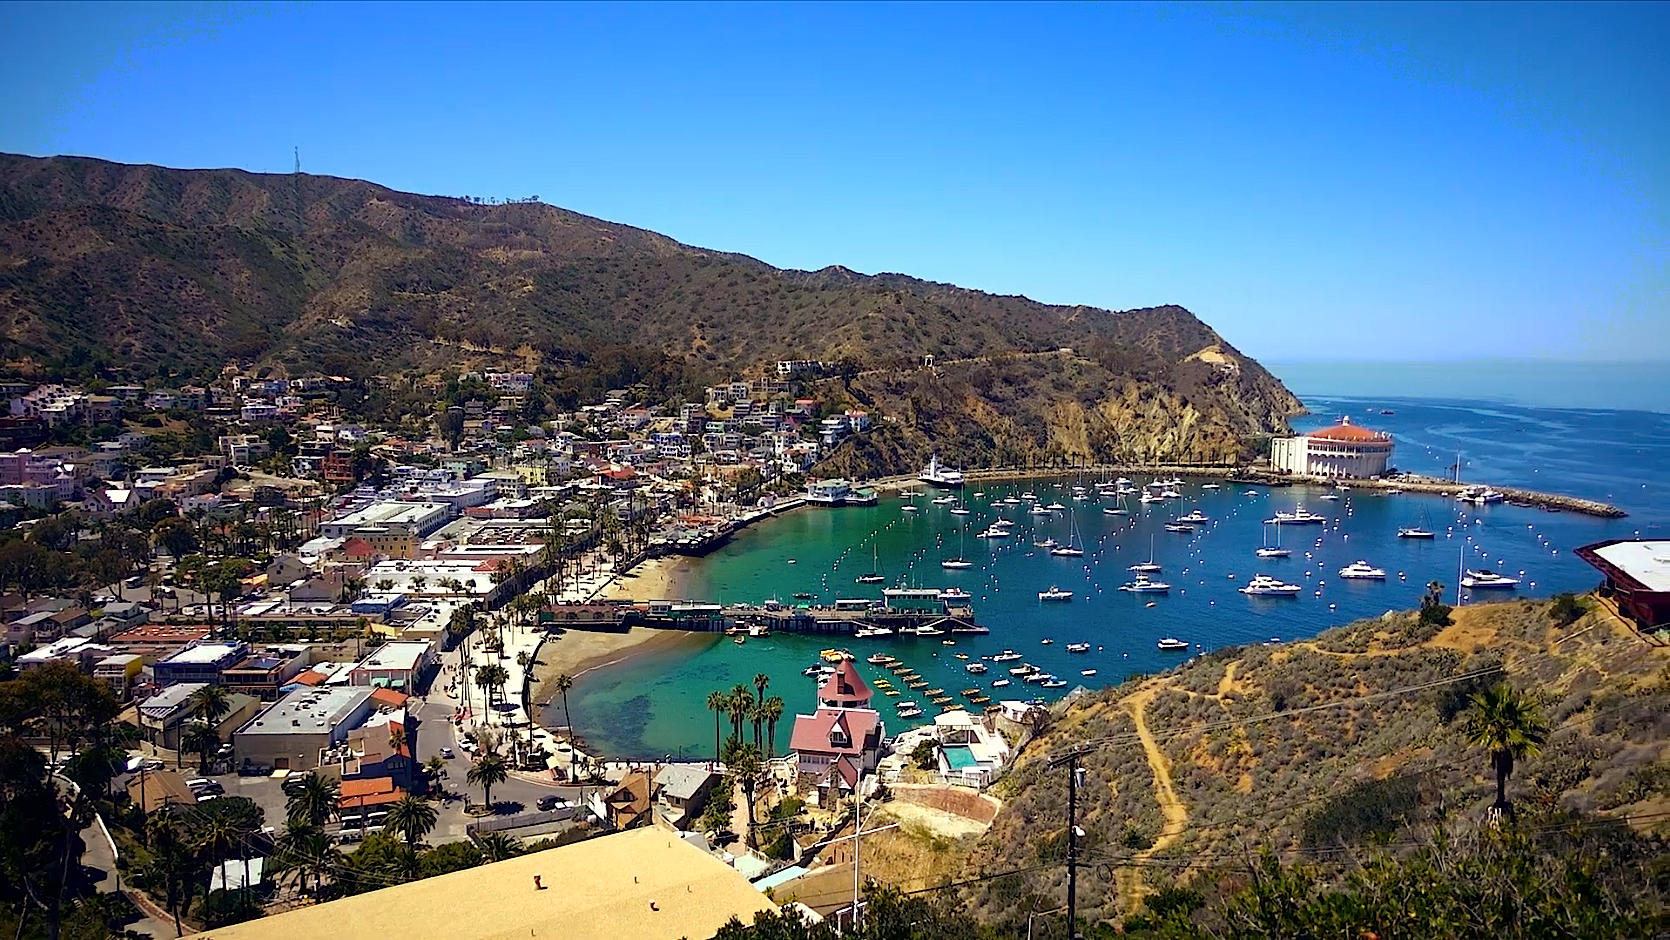 A BIRTHDAY GETAWAY TO CATALINA ISLAND!